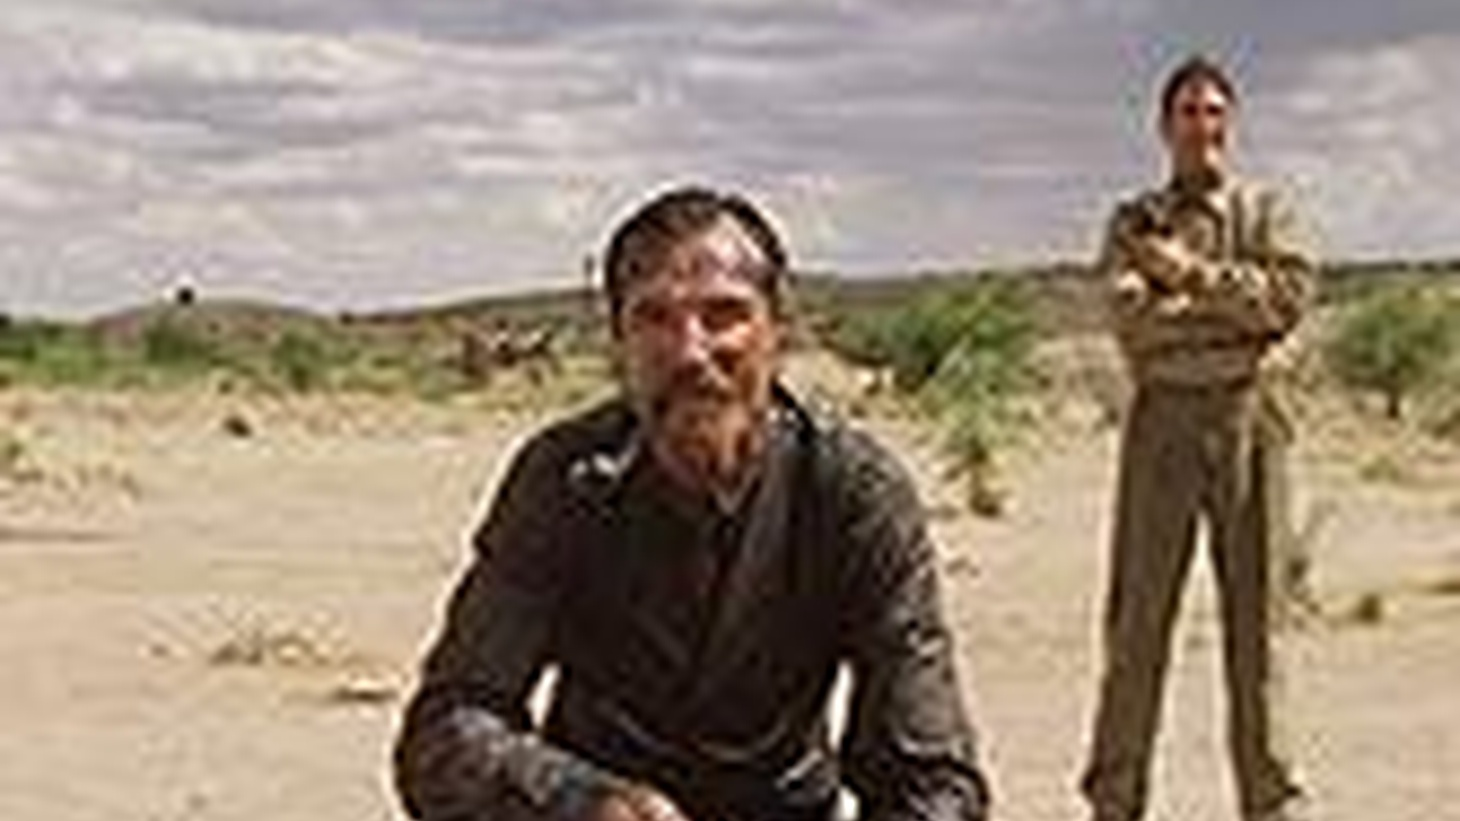 There Will Be Blood has a wondrously monstrous hero, a turn-of-the-cent oilman named Daniel Plainview. One of the many ways he vents his rage against humanity is by threatening to bury his enemies alive...